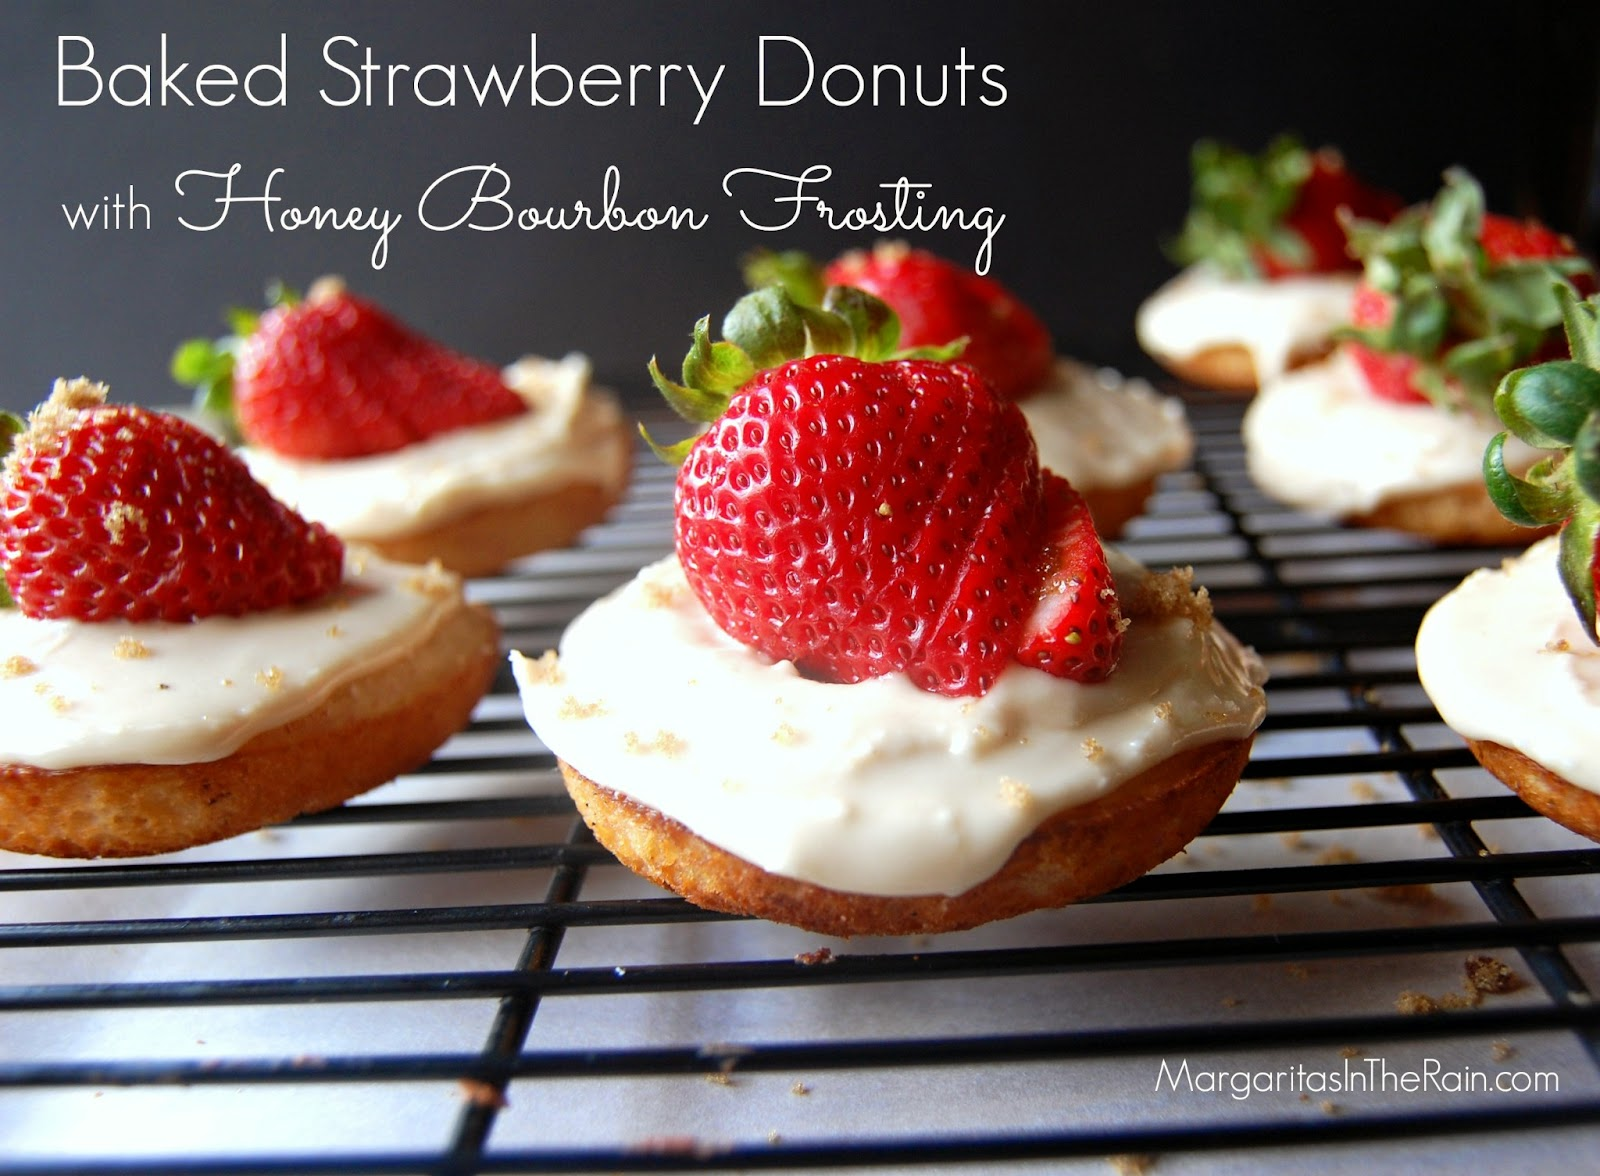 Baked Strawberry Donuts with Honey Bourbon Glaze